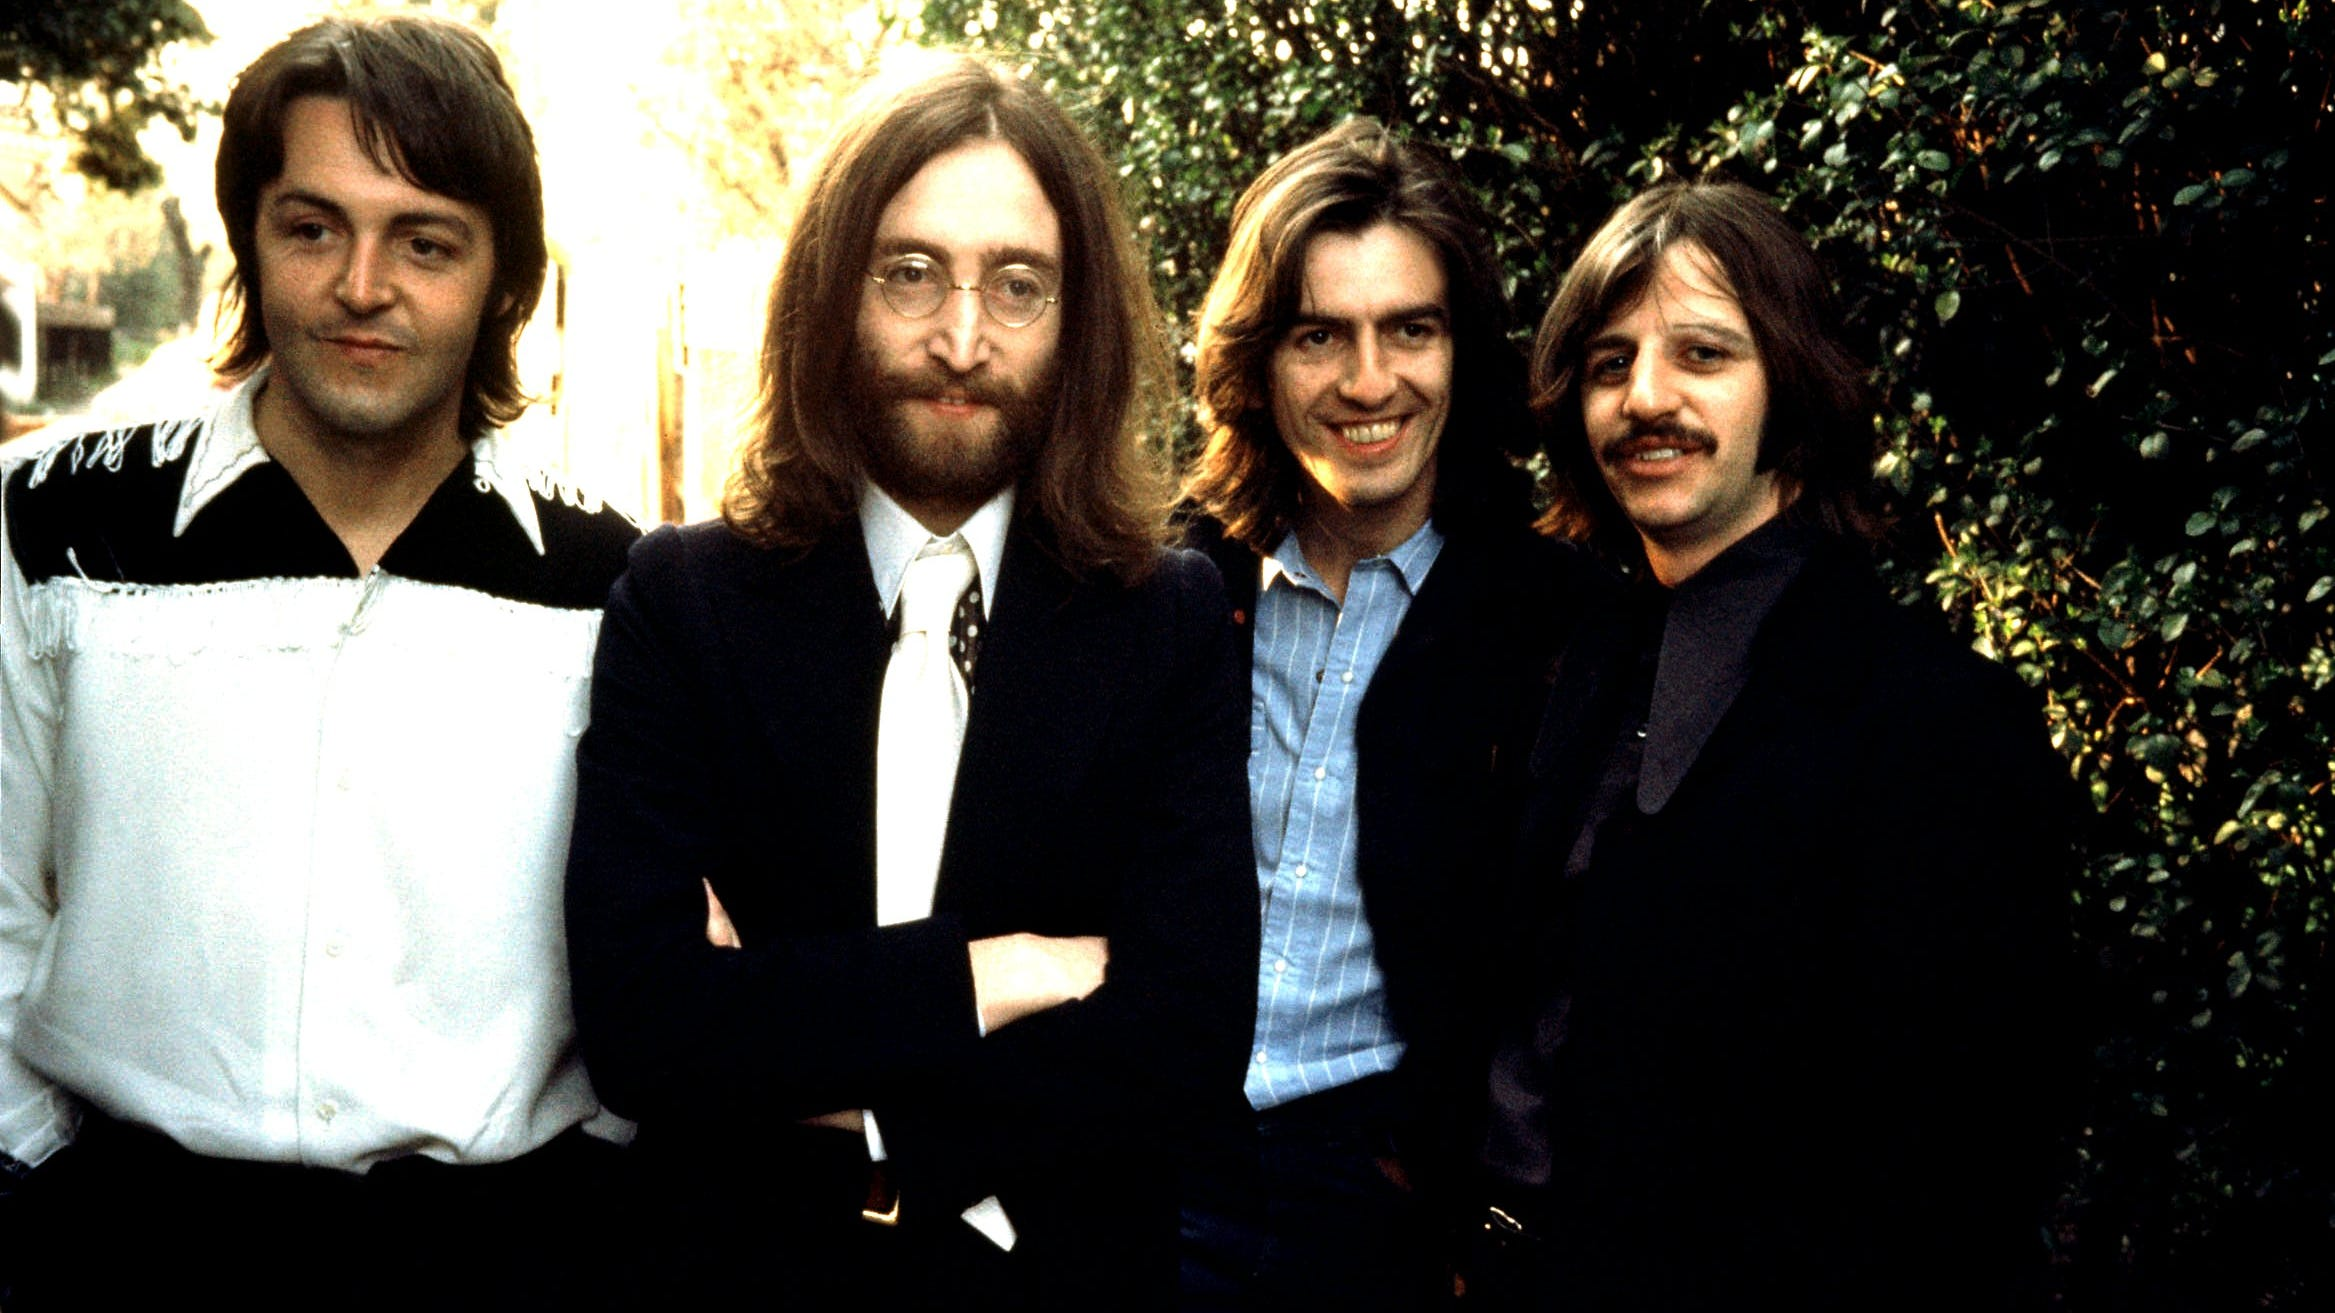 Let It Be' 50th anniversary: Looking back at the Beatles' final album